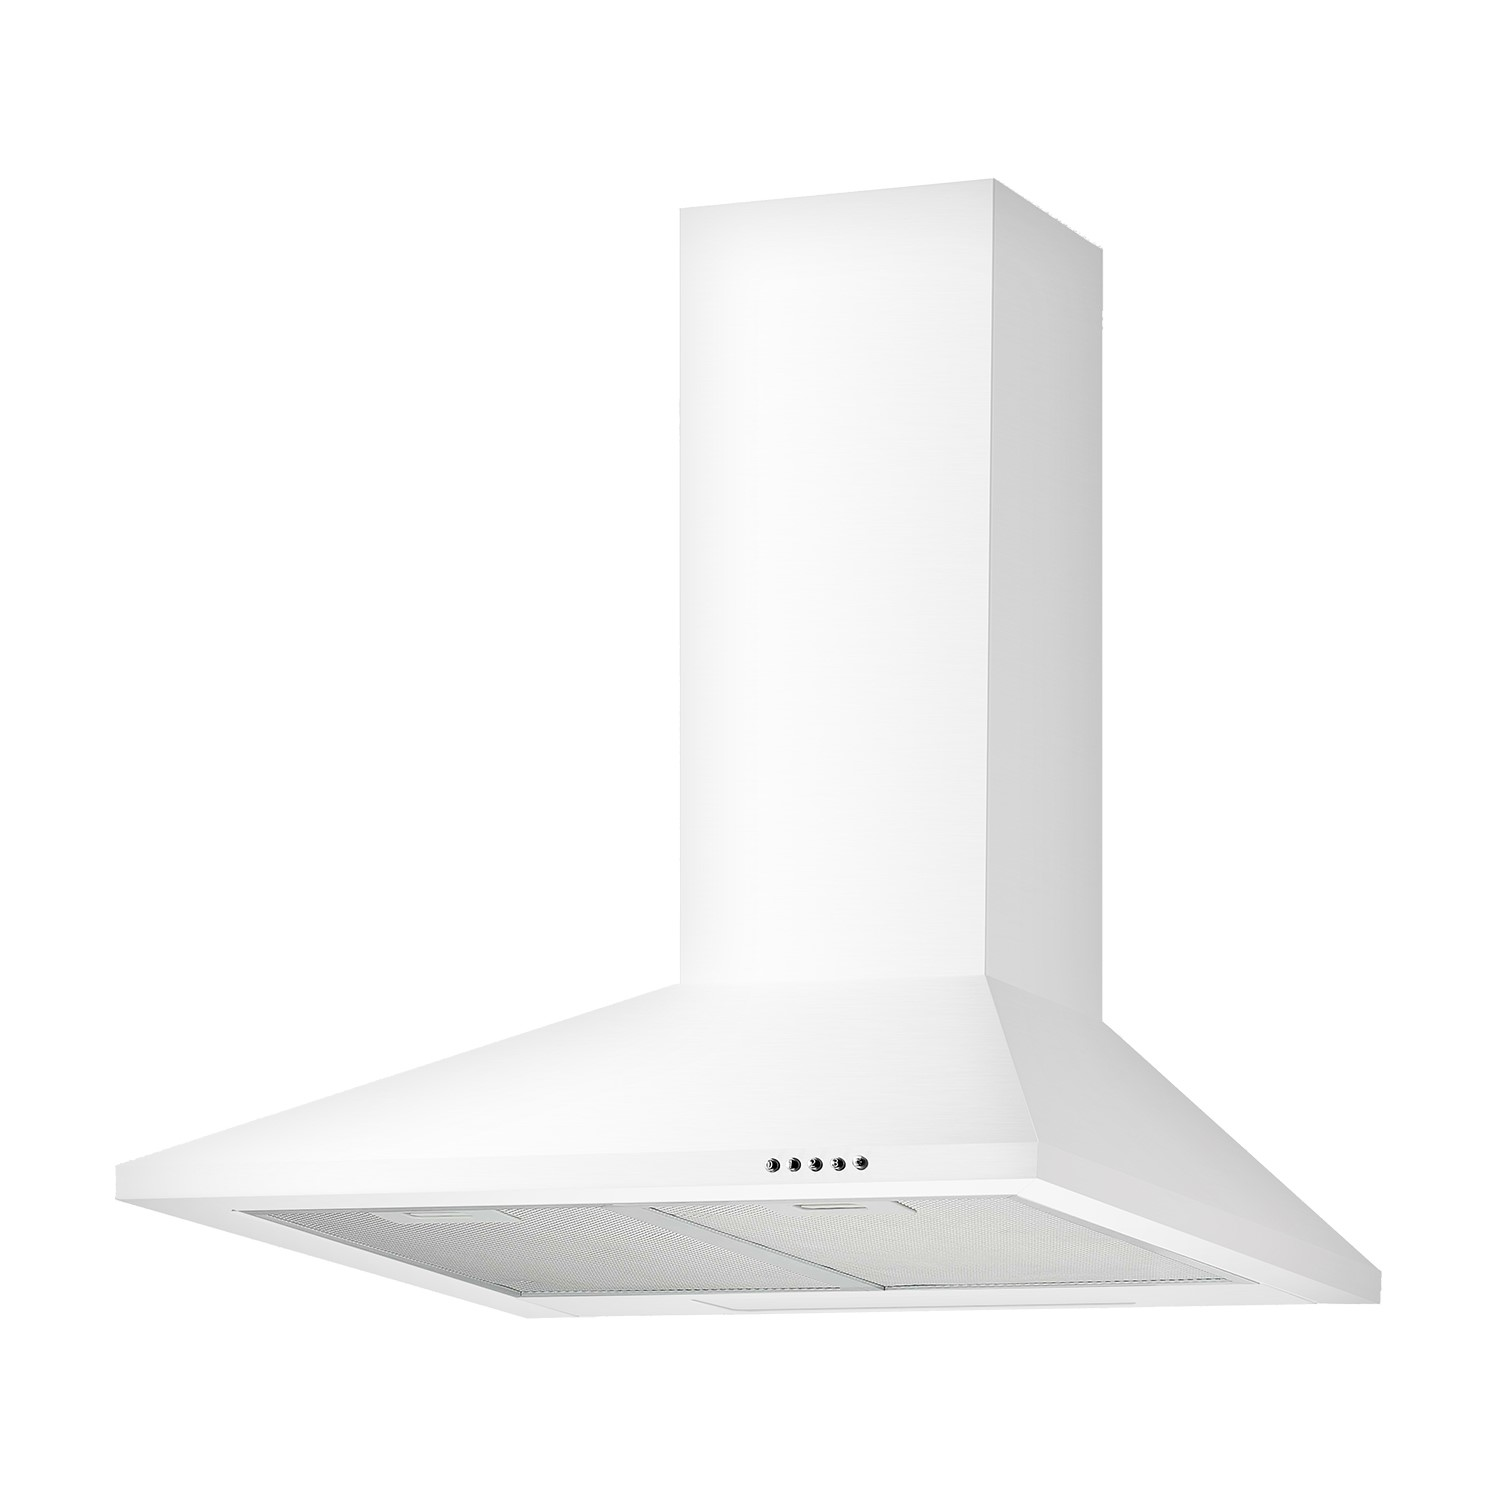 ElectriQ 60cm Traditional White Chimney Cooker Hood Kitchen Extractor   5  Year Warranty